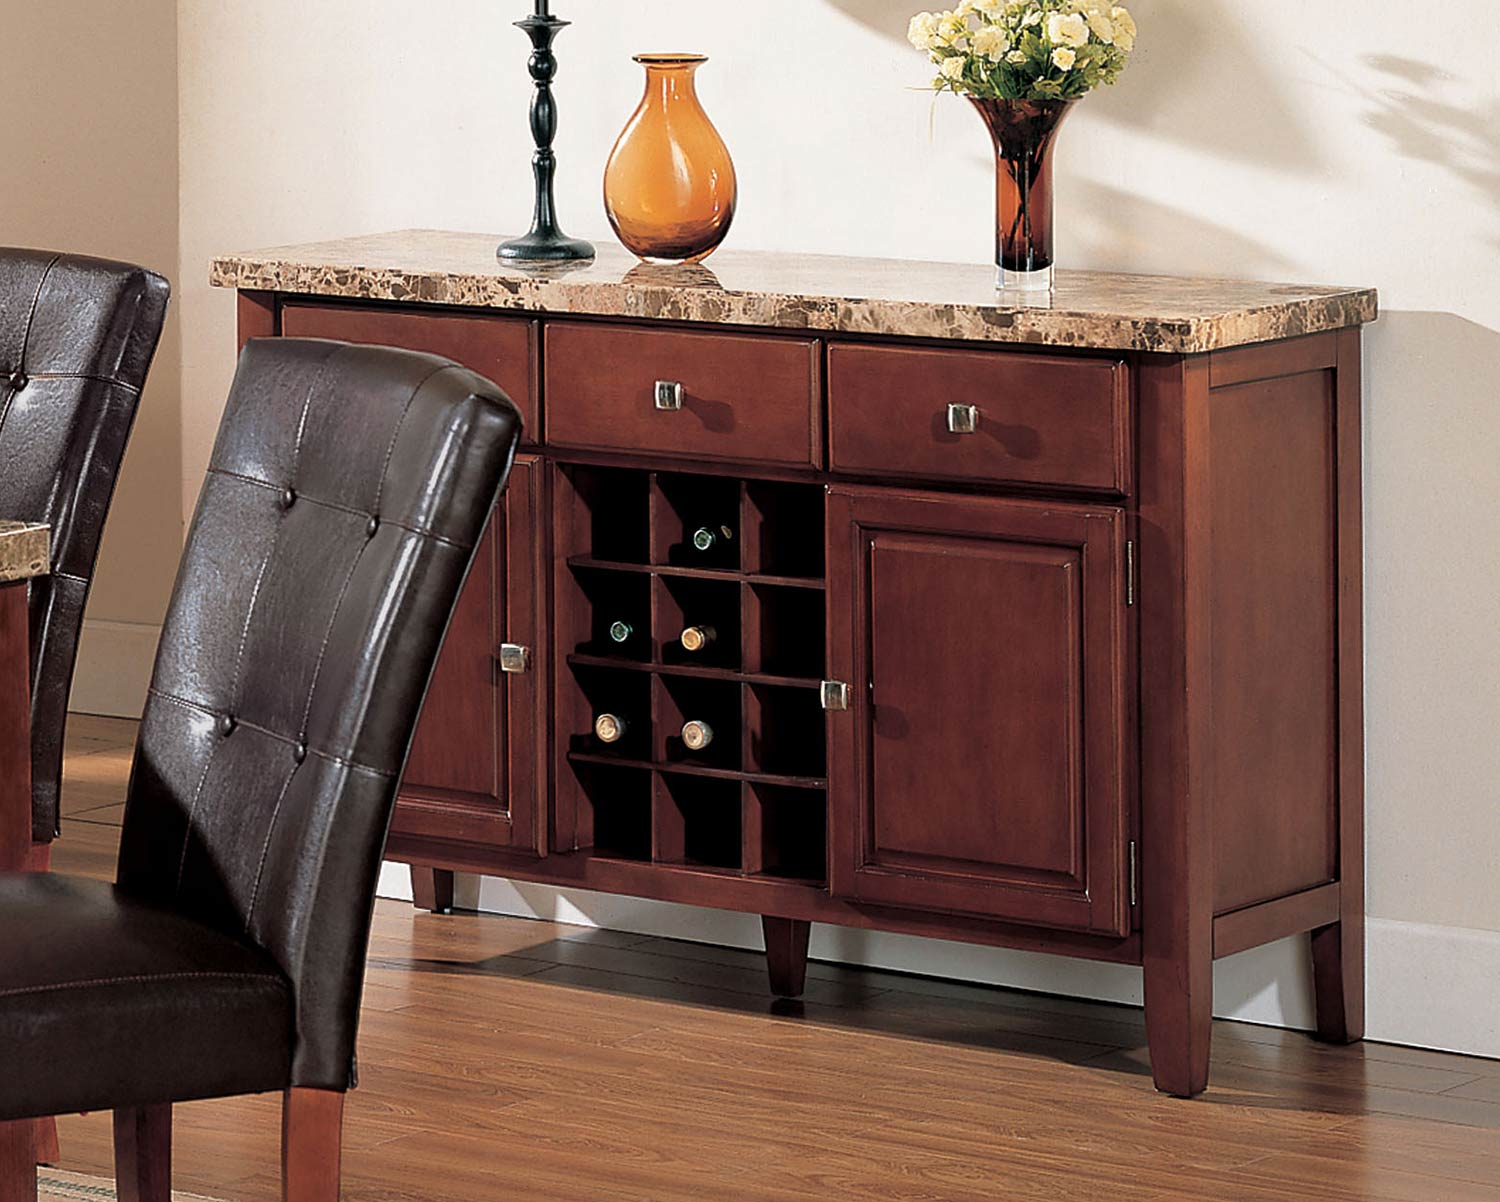 Acme Bologna Server - Brown Marble/Brown Cherry